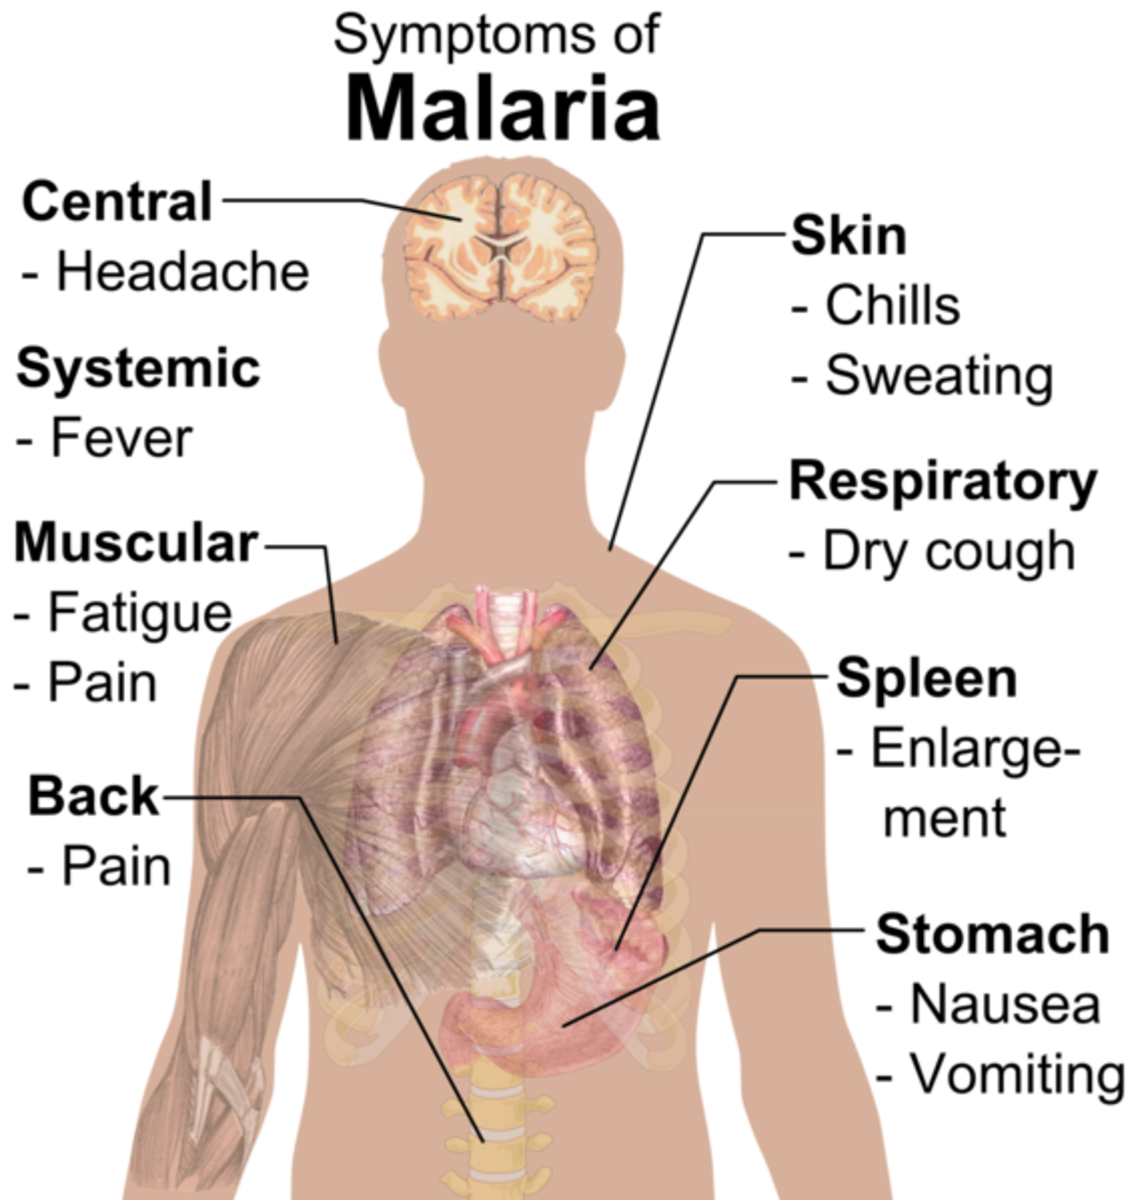 Symptoms of Malaria by area of body